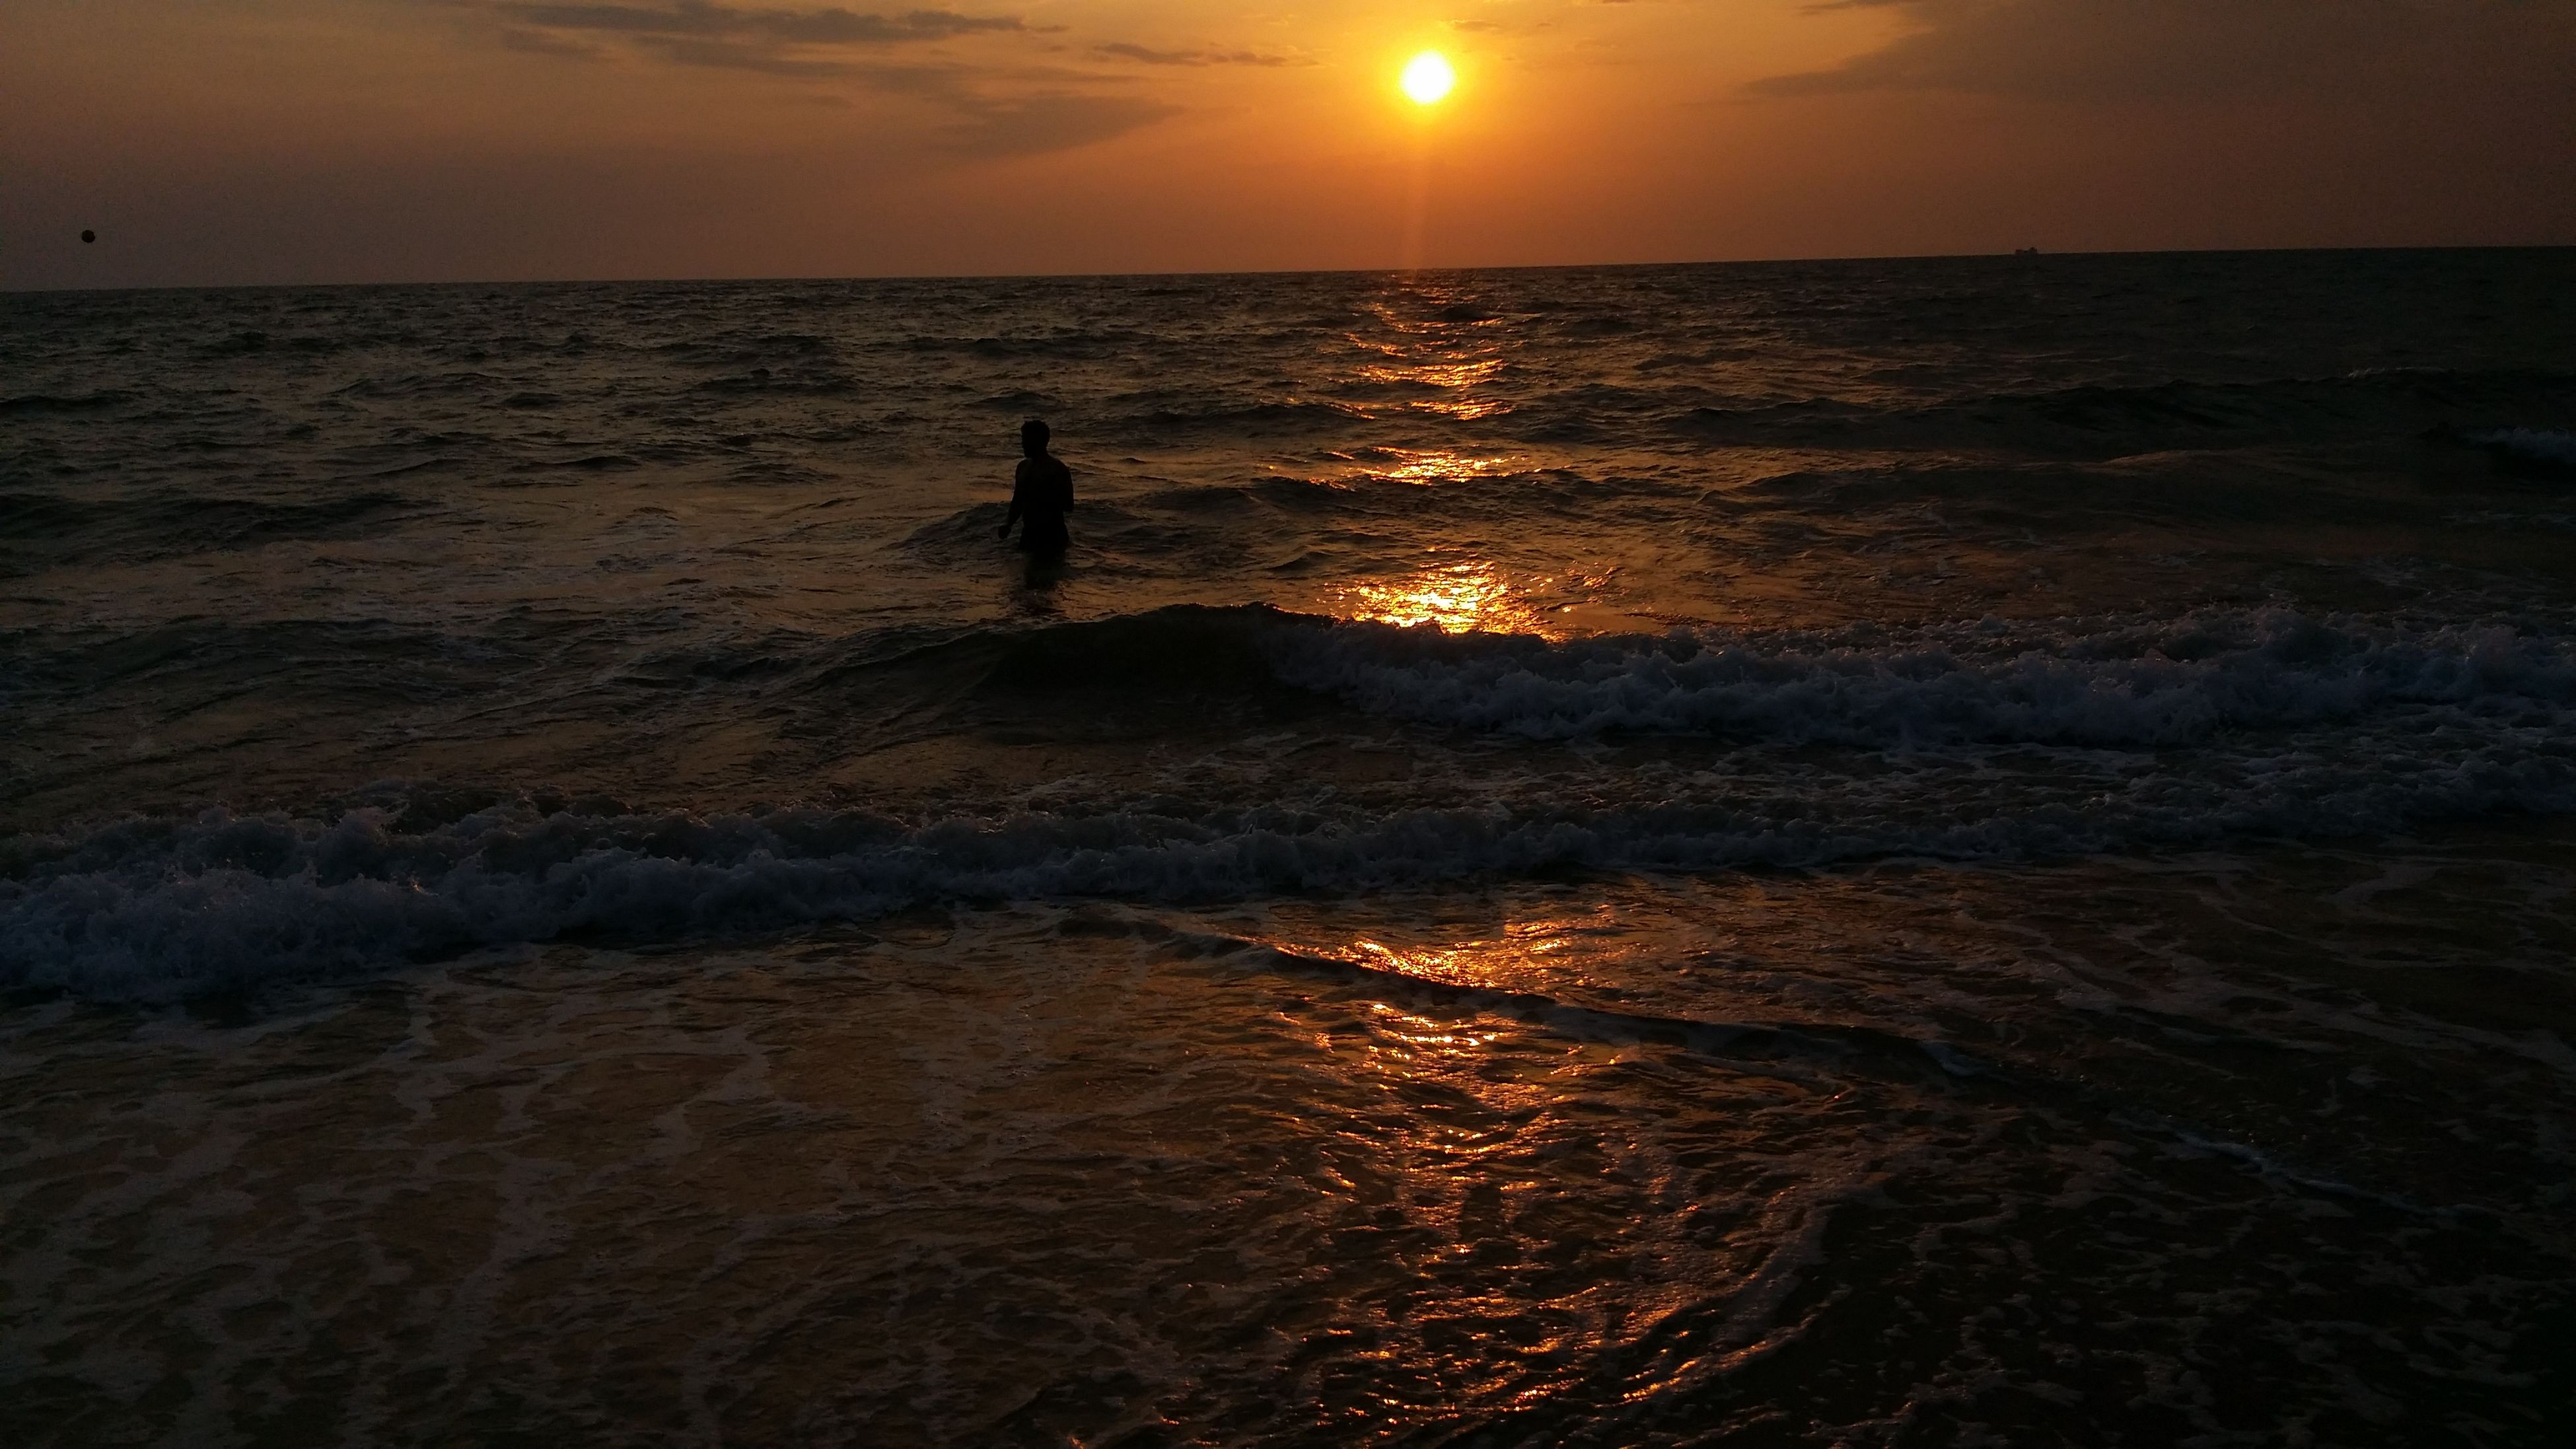 sea, sunset, water, horizon over water, silhouette, sun, scenics, tranquil scene, beach, beauty in nature, tranquility, shore, nature, idyllic, orange color, sky, reflection, sunlight, rippled, wave